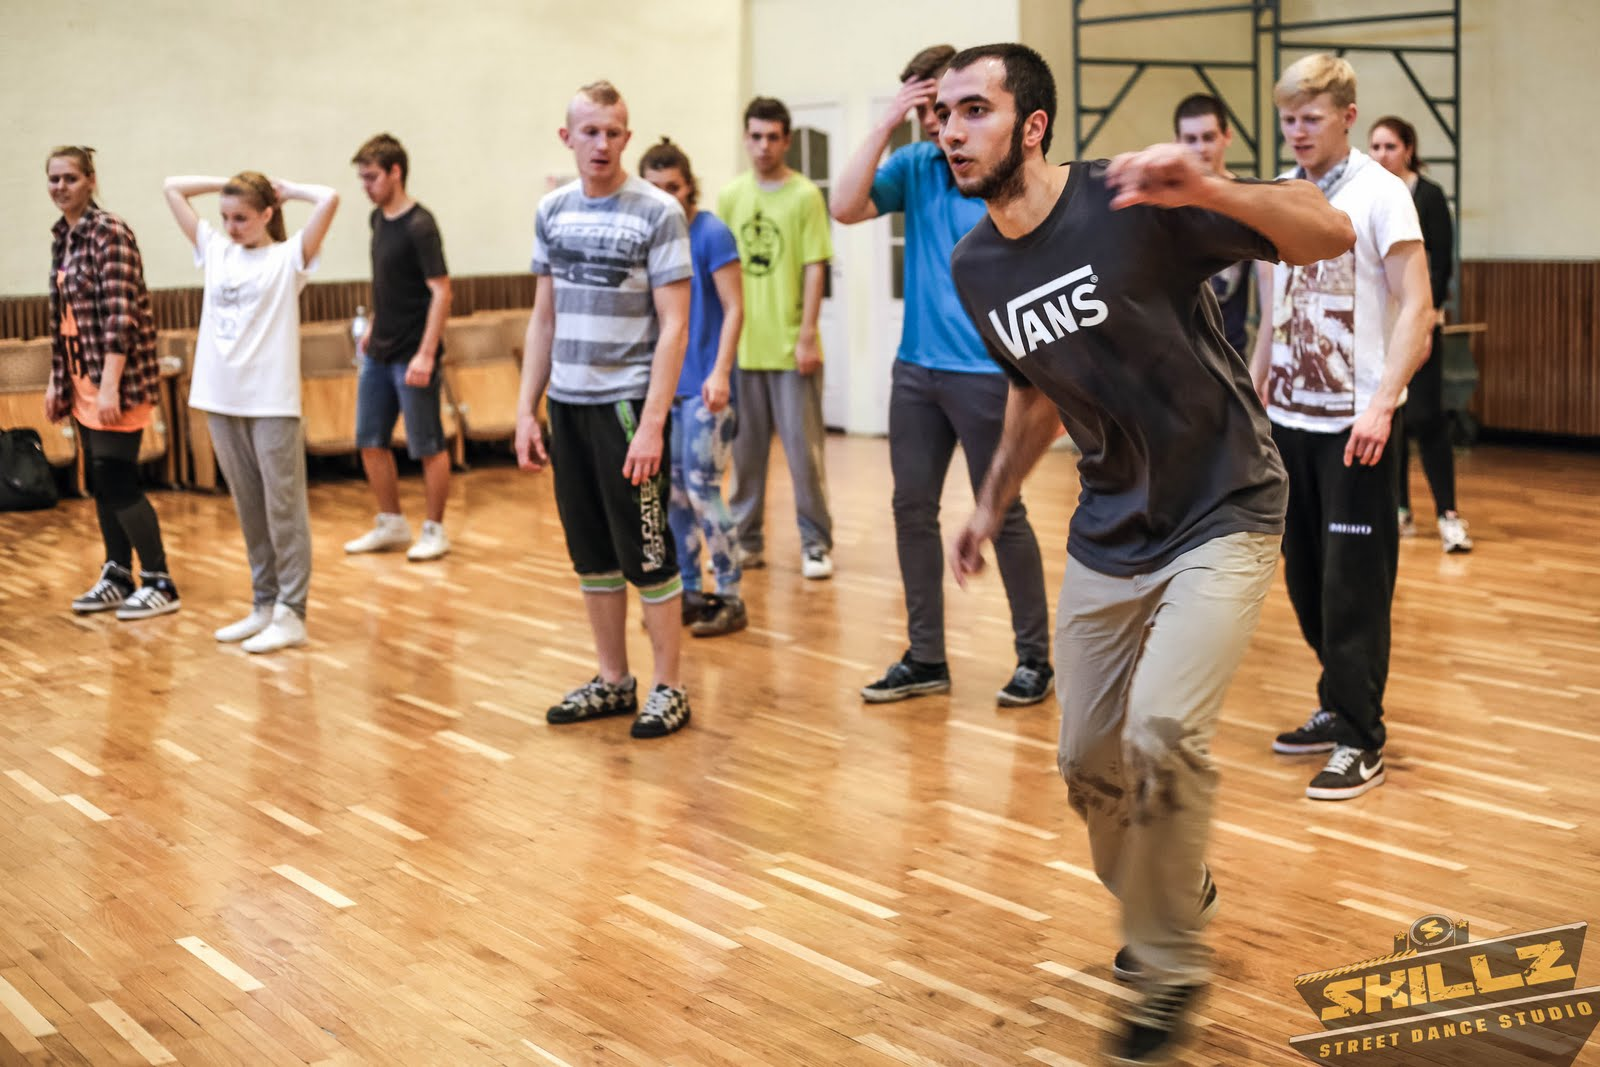 Workshop with Kusch (Russia) - IMG_4722.jpg